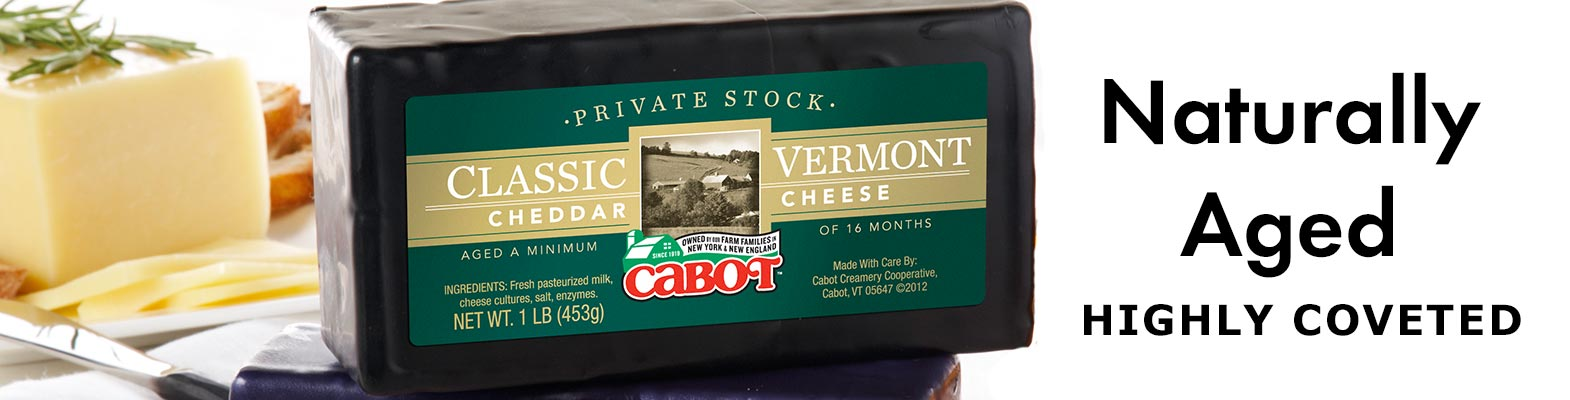 Cabot Cheese Private Stock